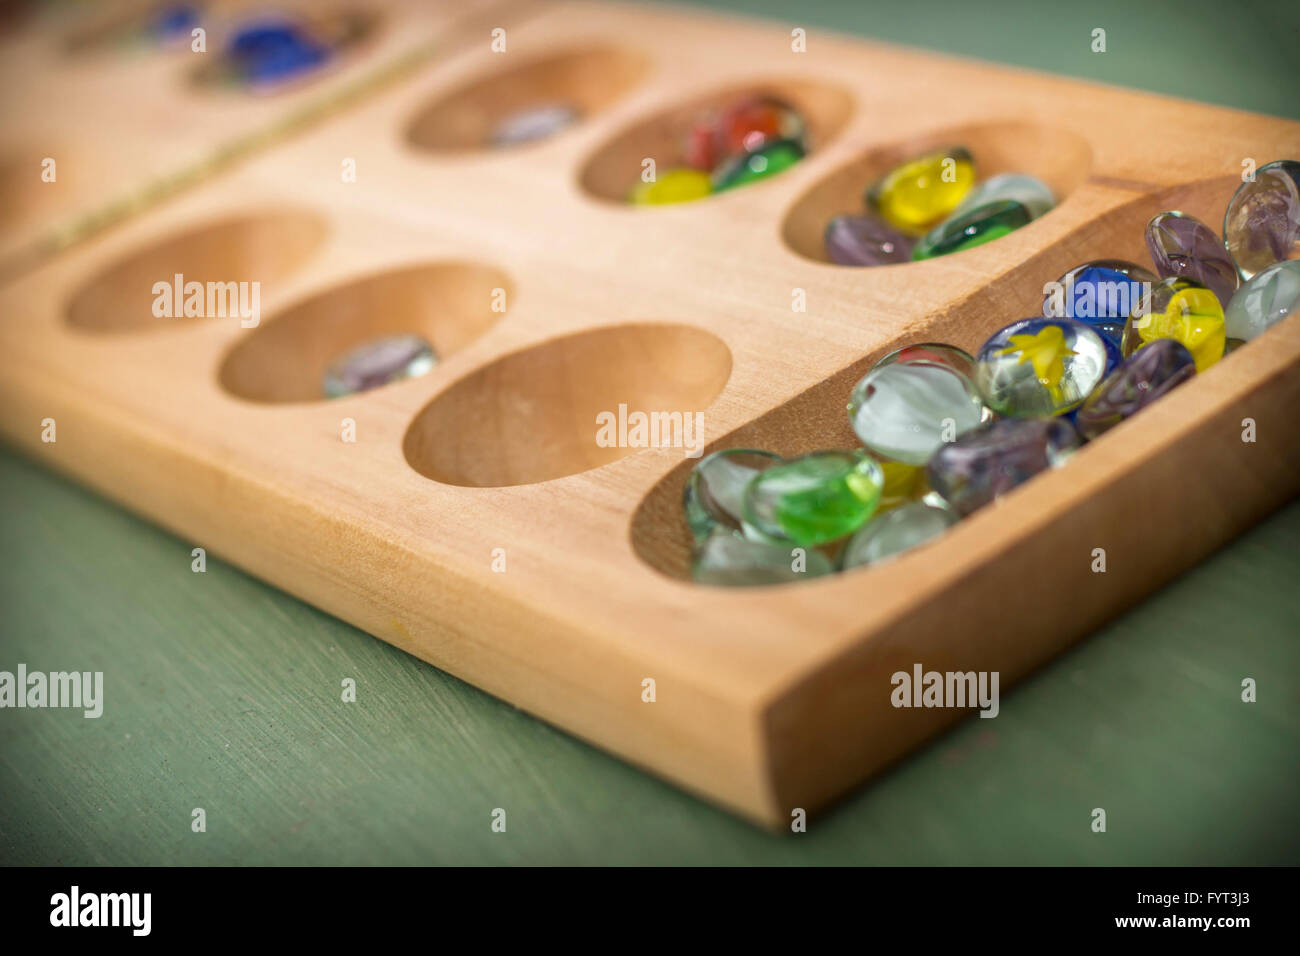 Traditional Mancala boardgame with glass pieces on wooden table Stock Photo